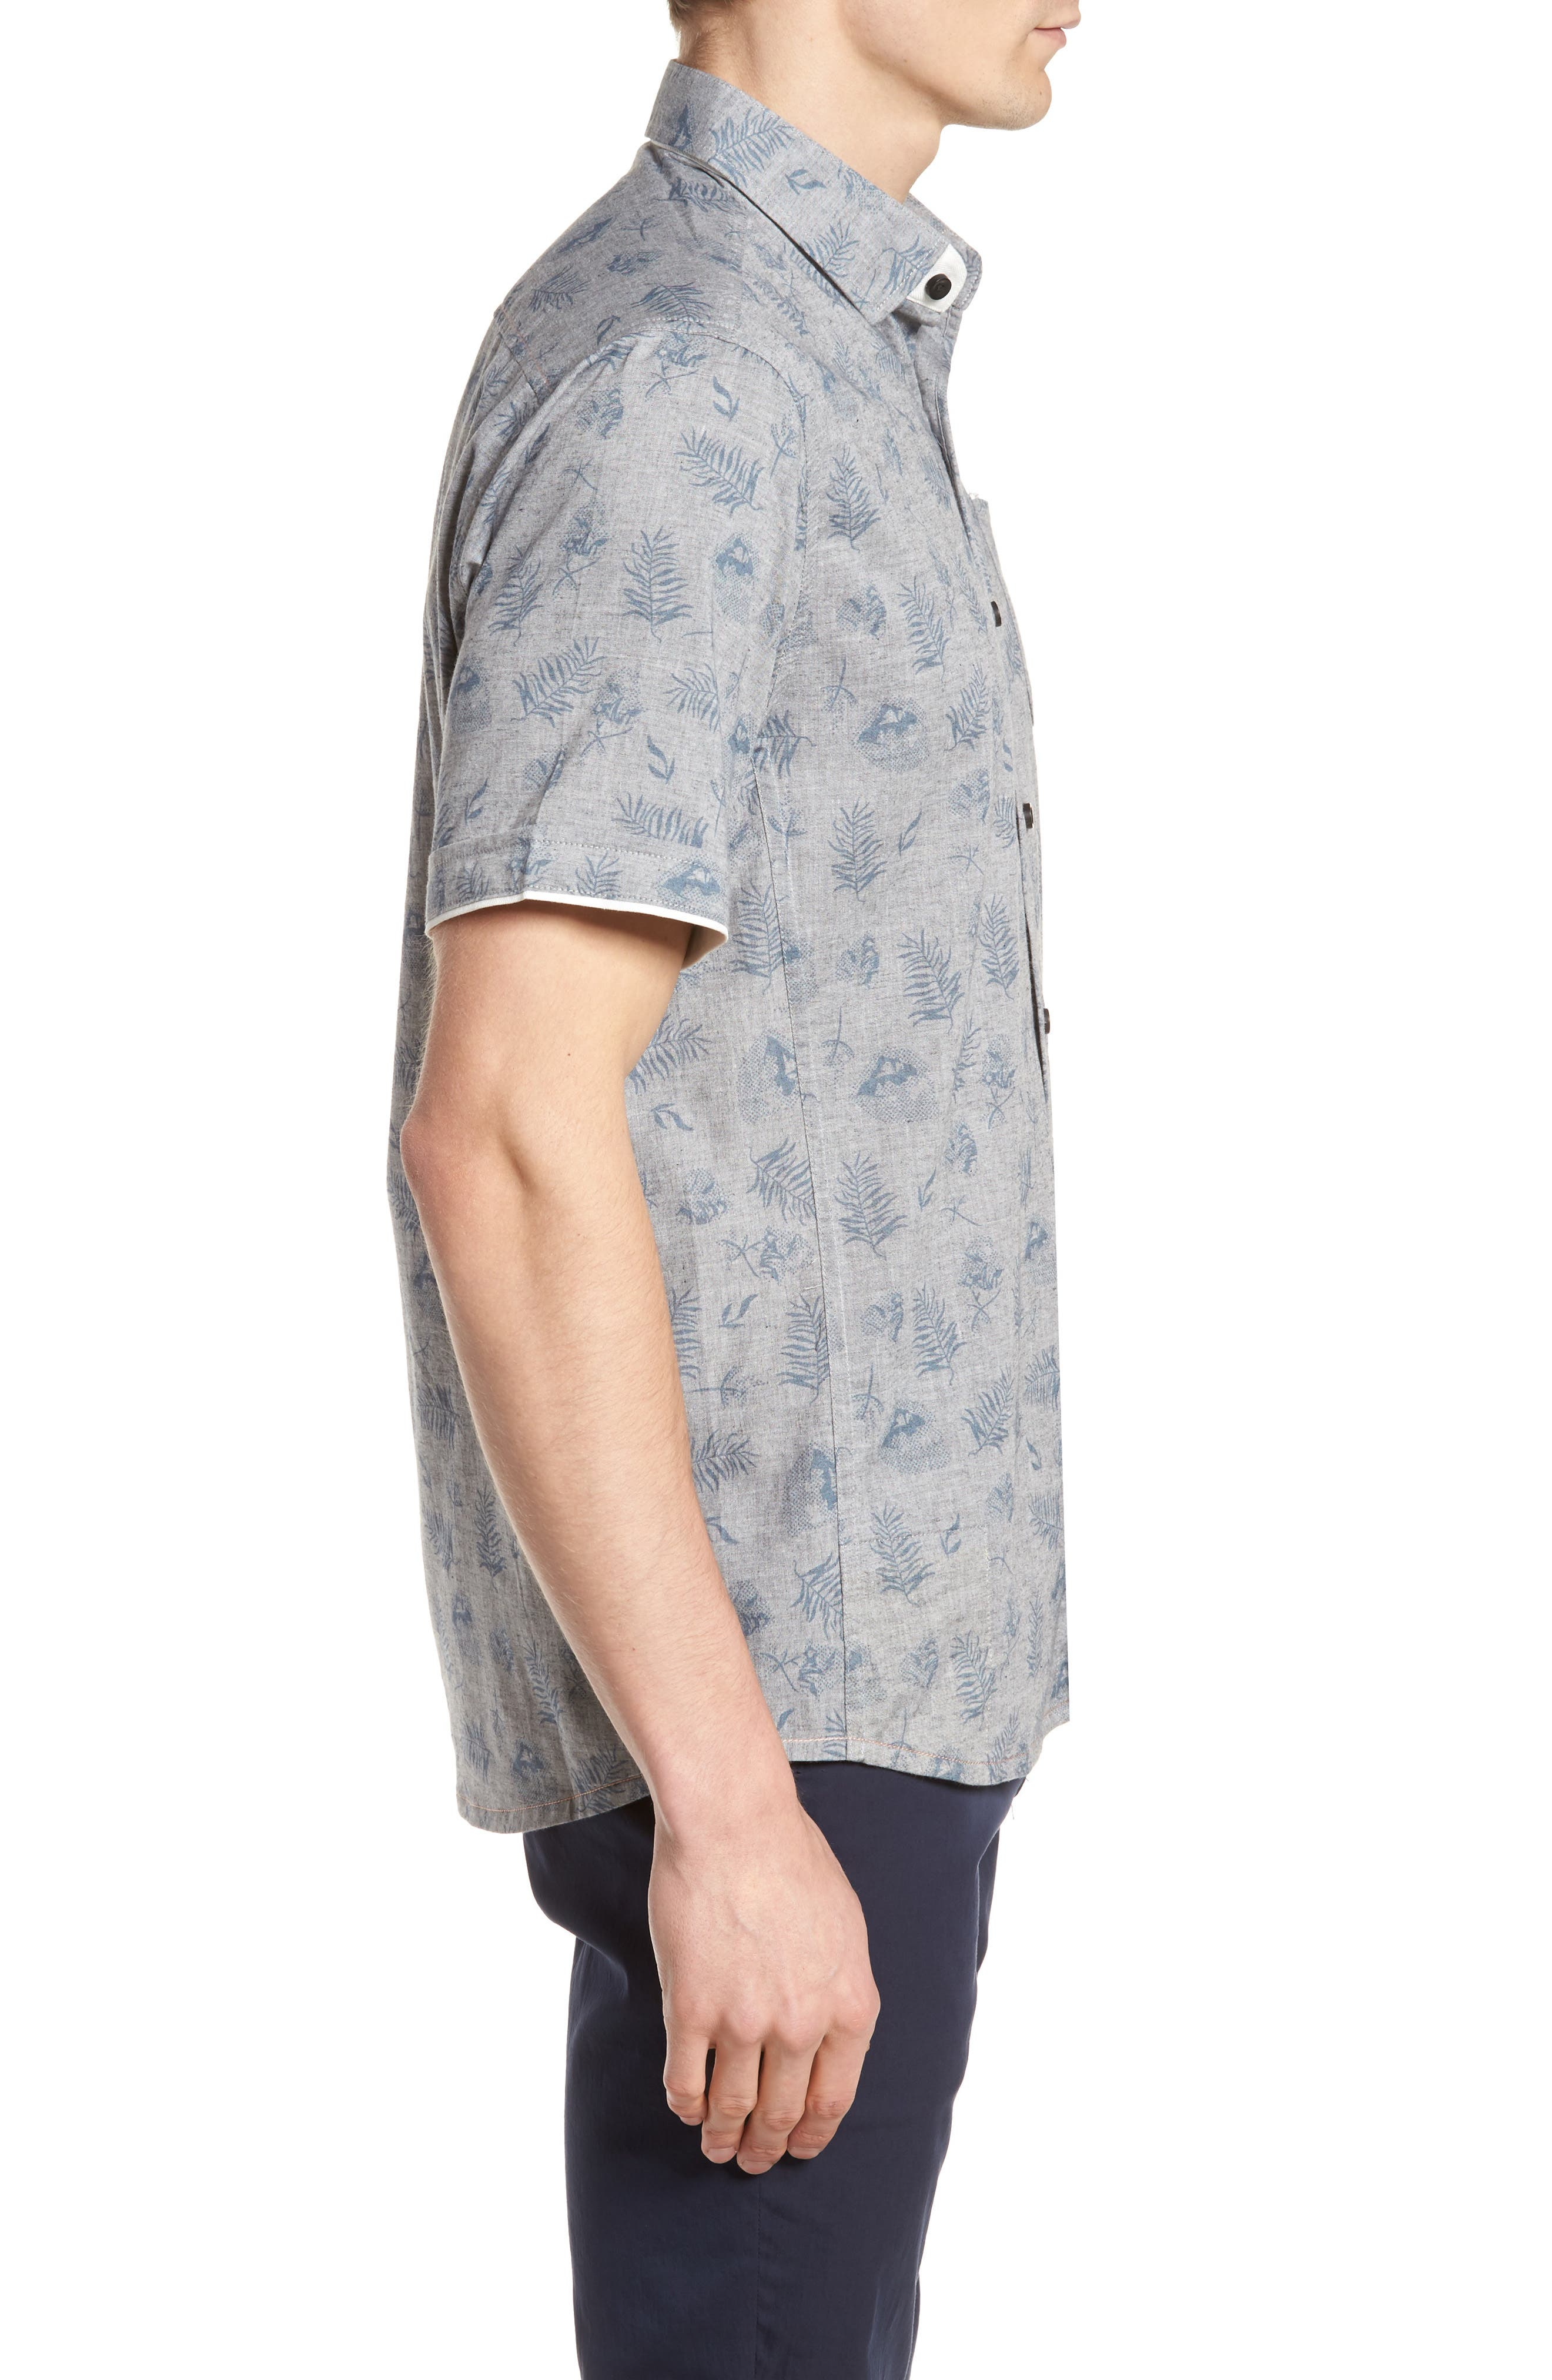 Rock Steady Woven Shirt,                             Alternate thumbnail 4, color,                             Grey